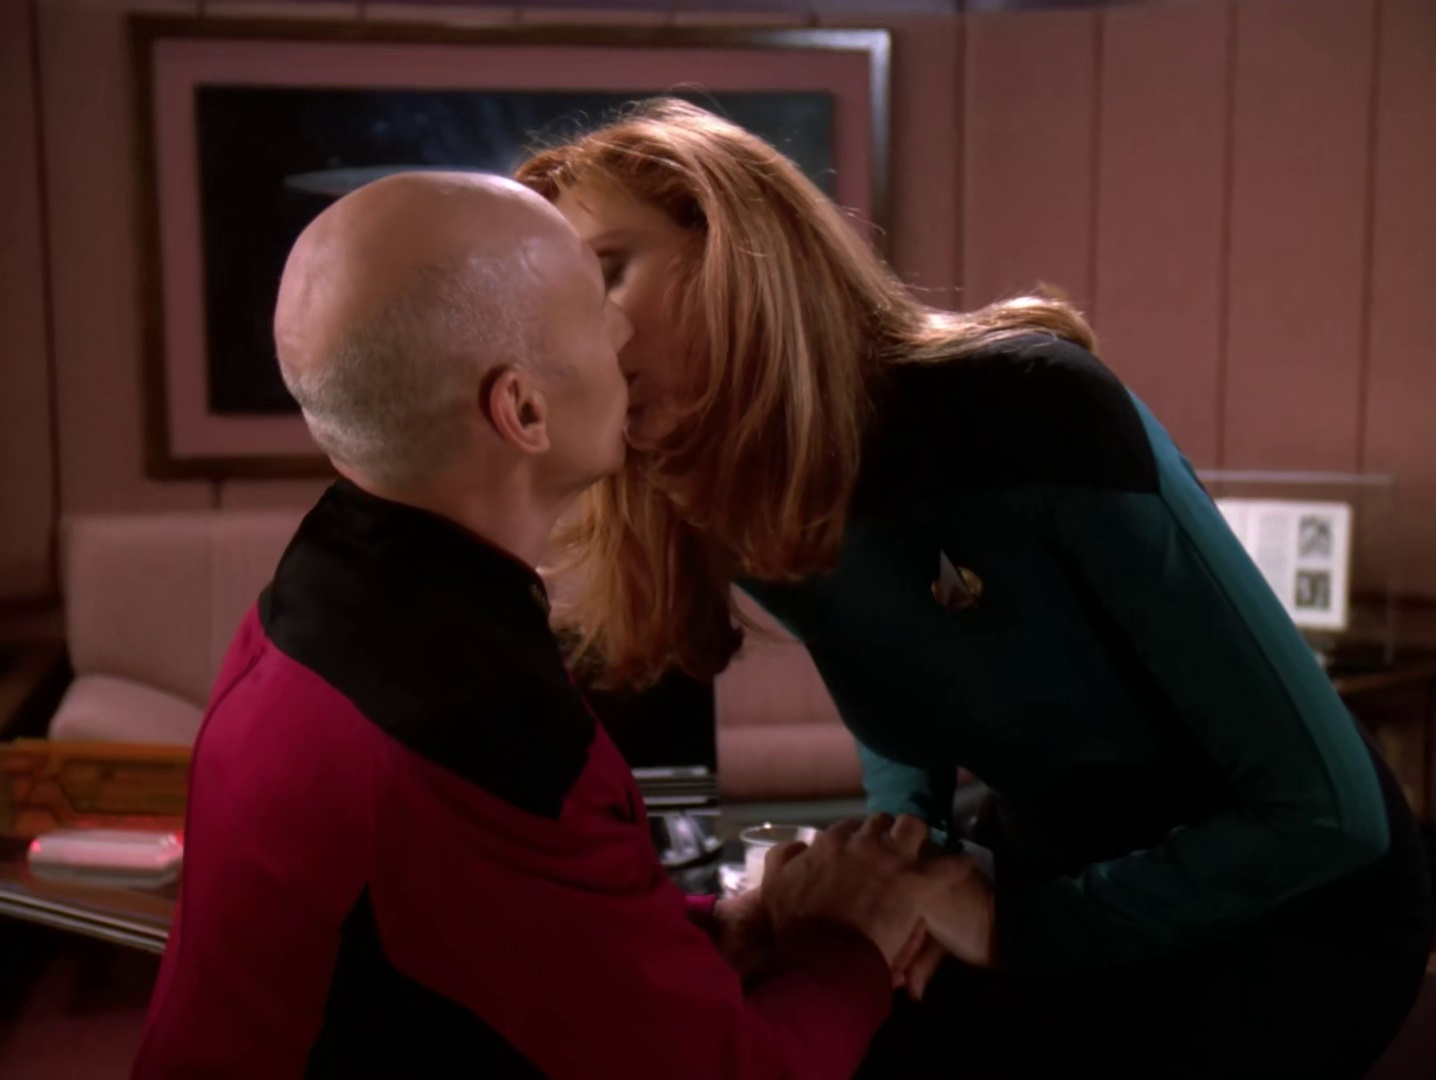 riker and troi relationship advice